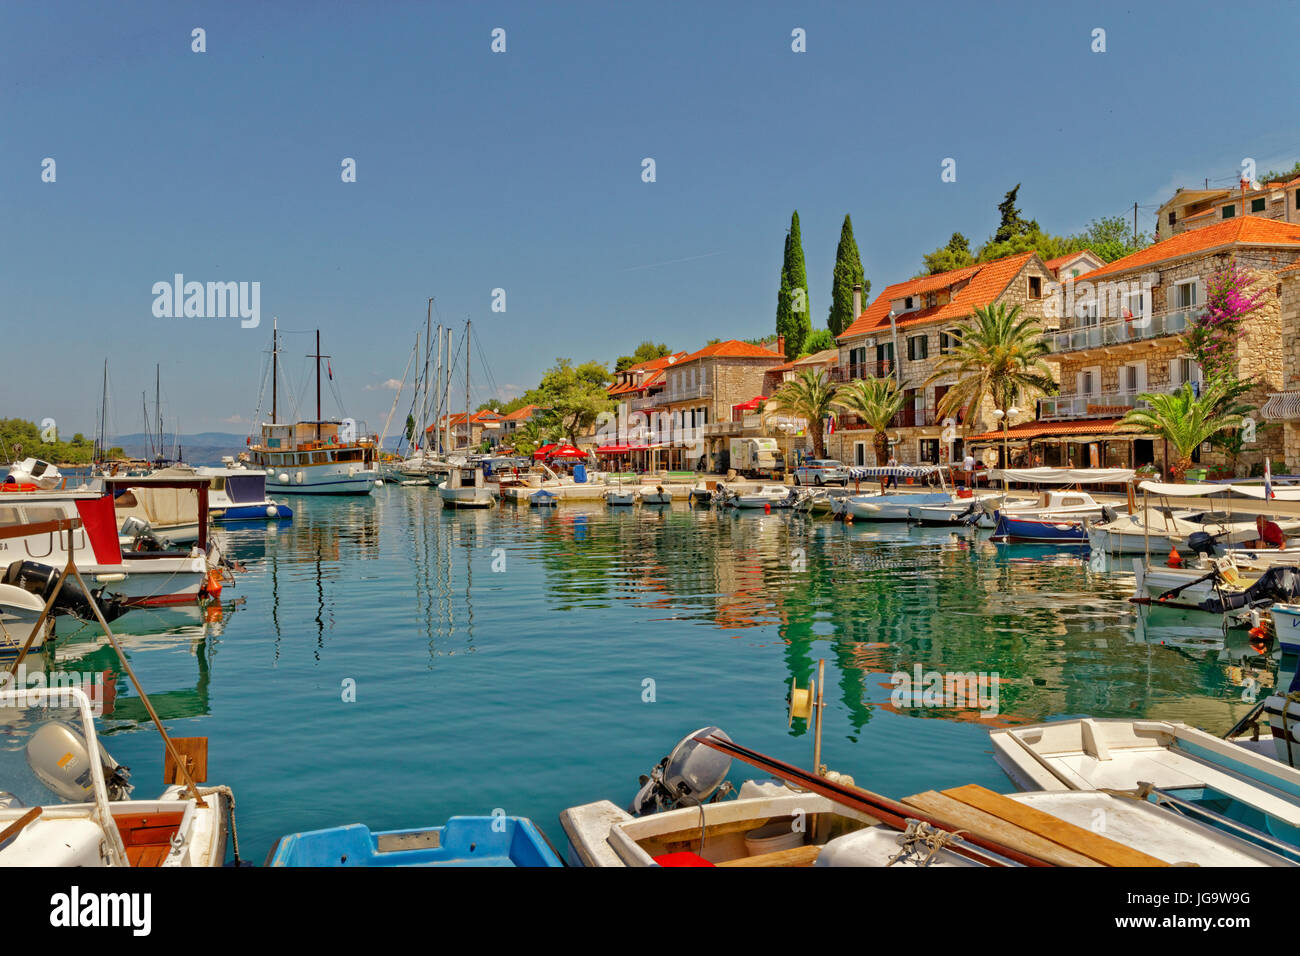 Stomorska village on the island of Solta, Croatia. - Stock Image